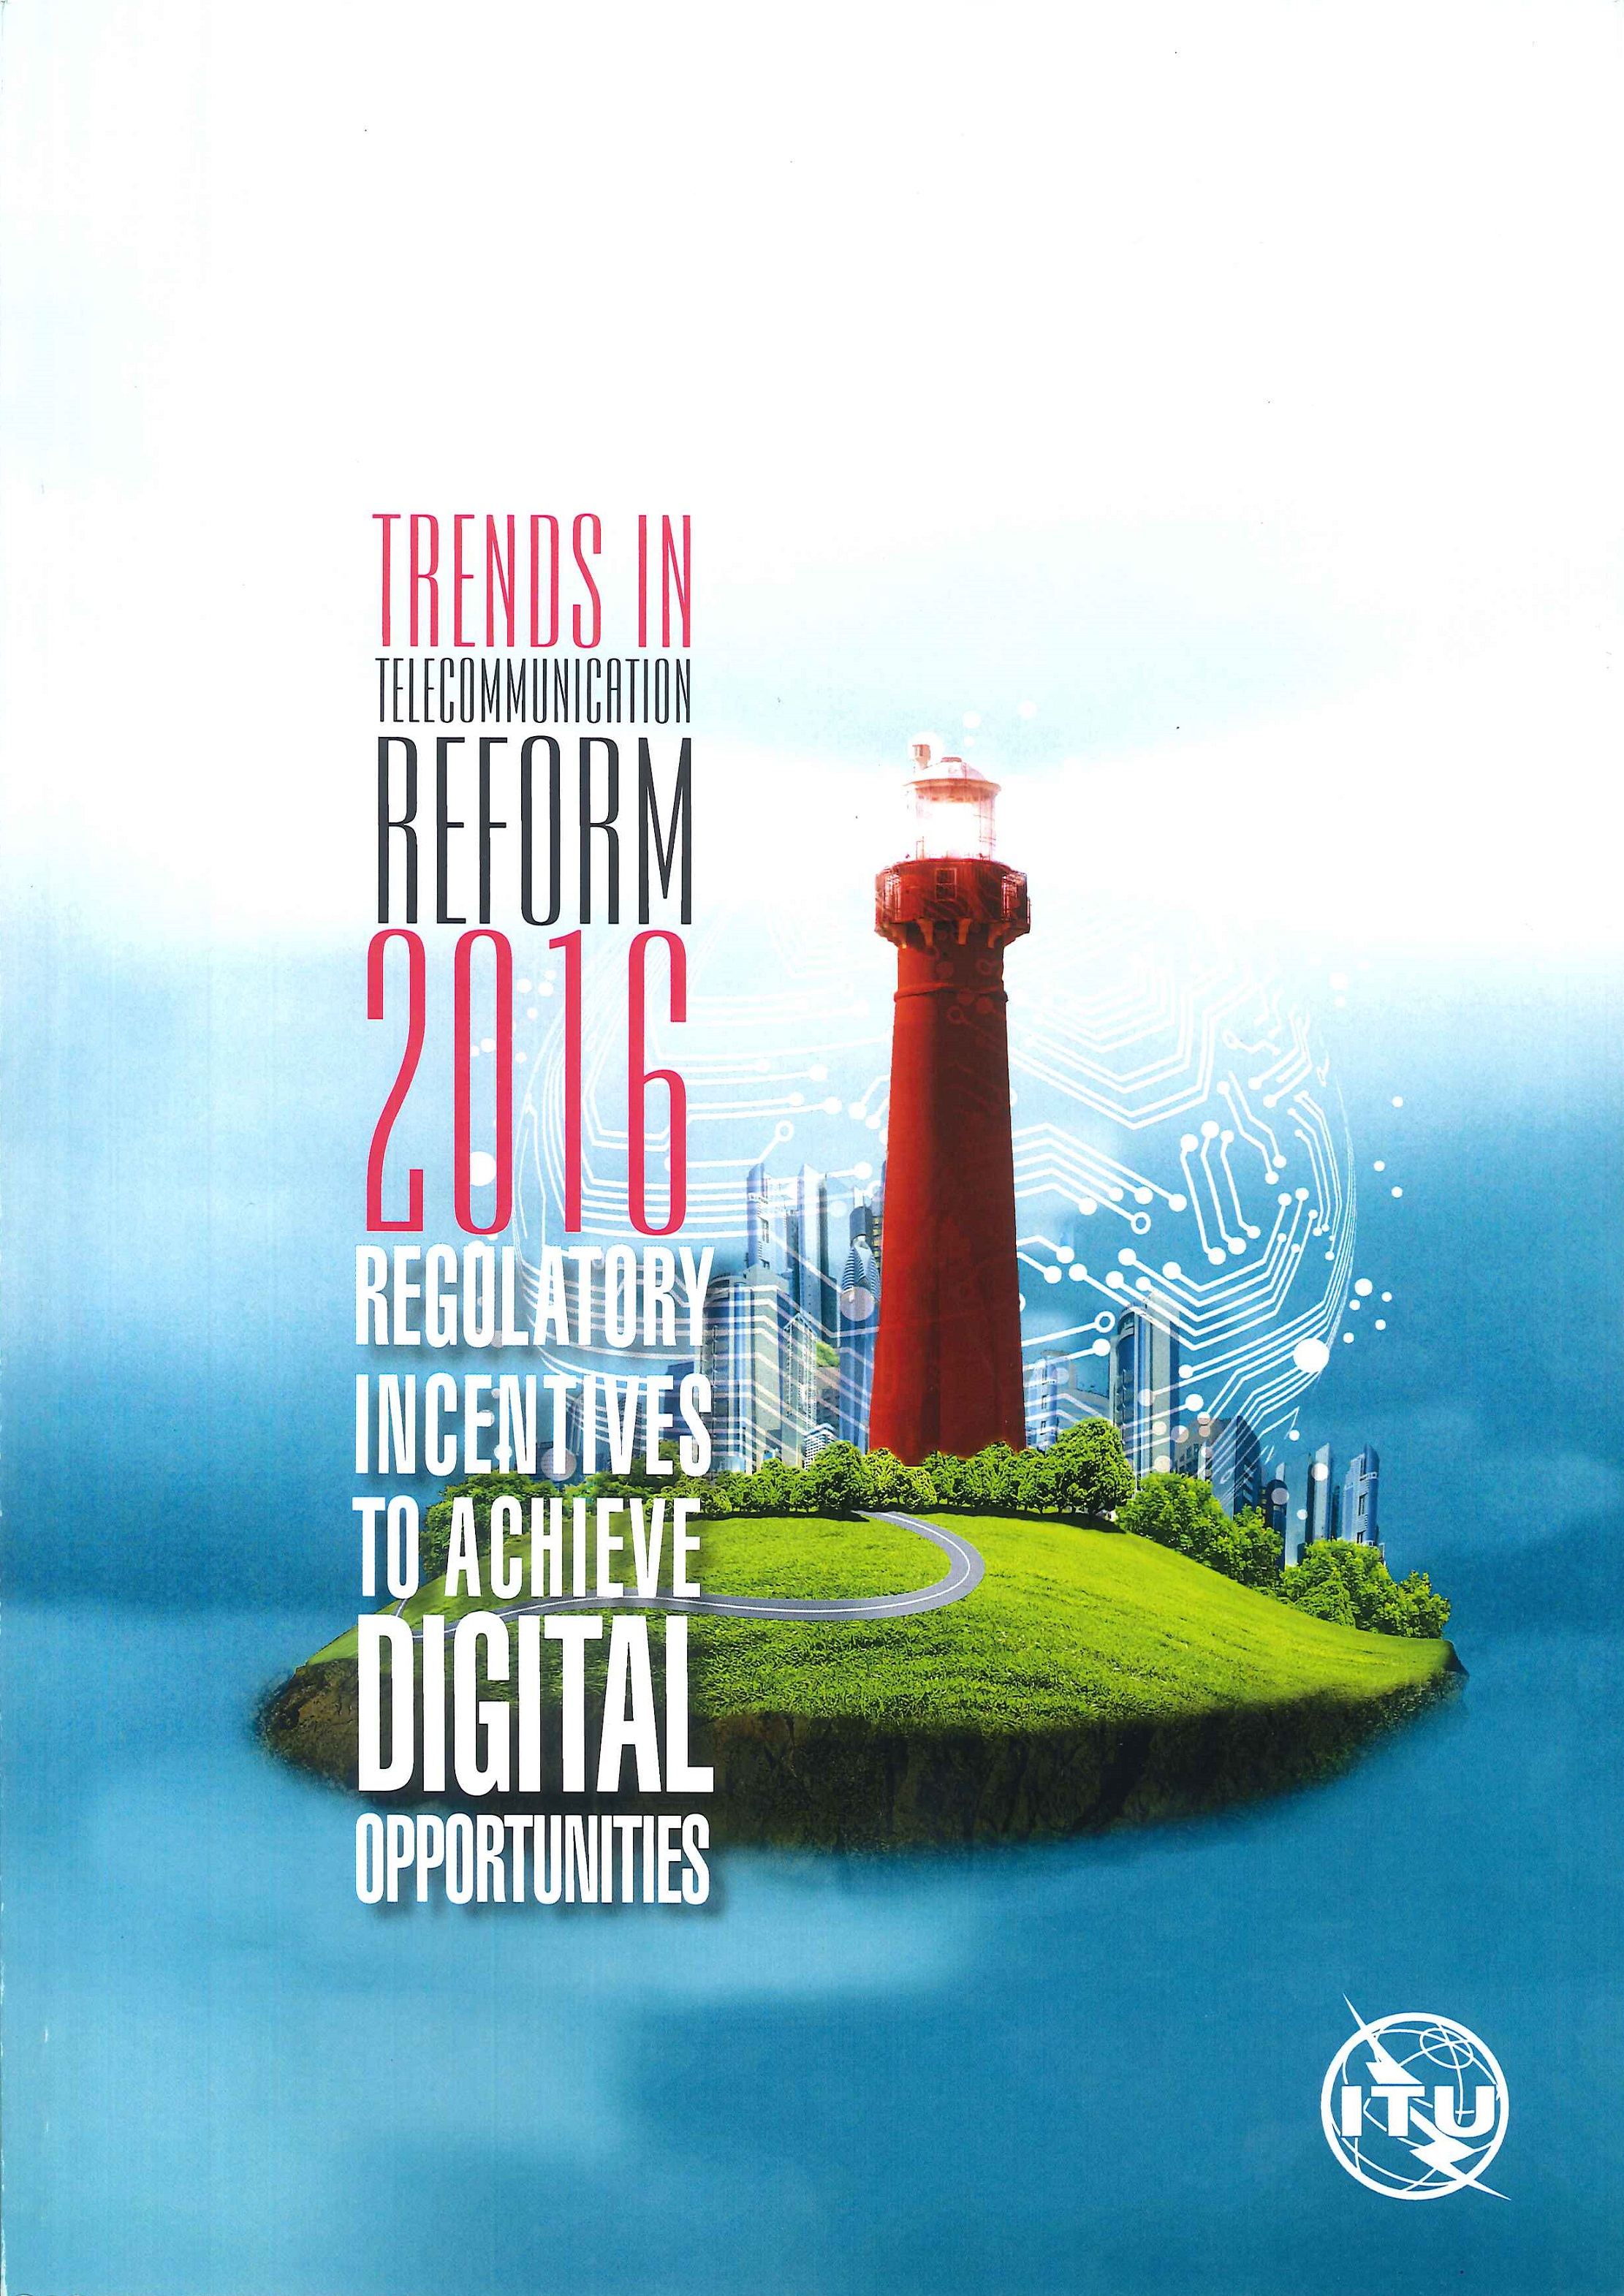 Trends in telecommunication reform [ebook]:regulatory incentives to achieve digital opportunities